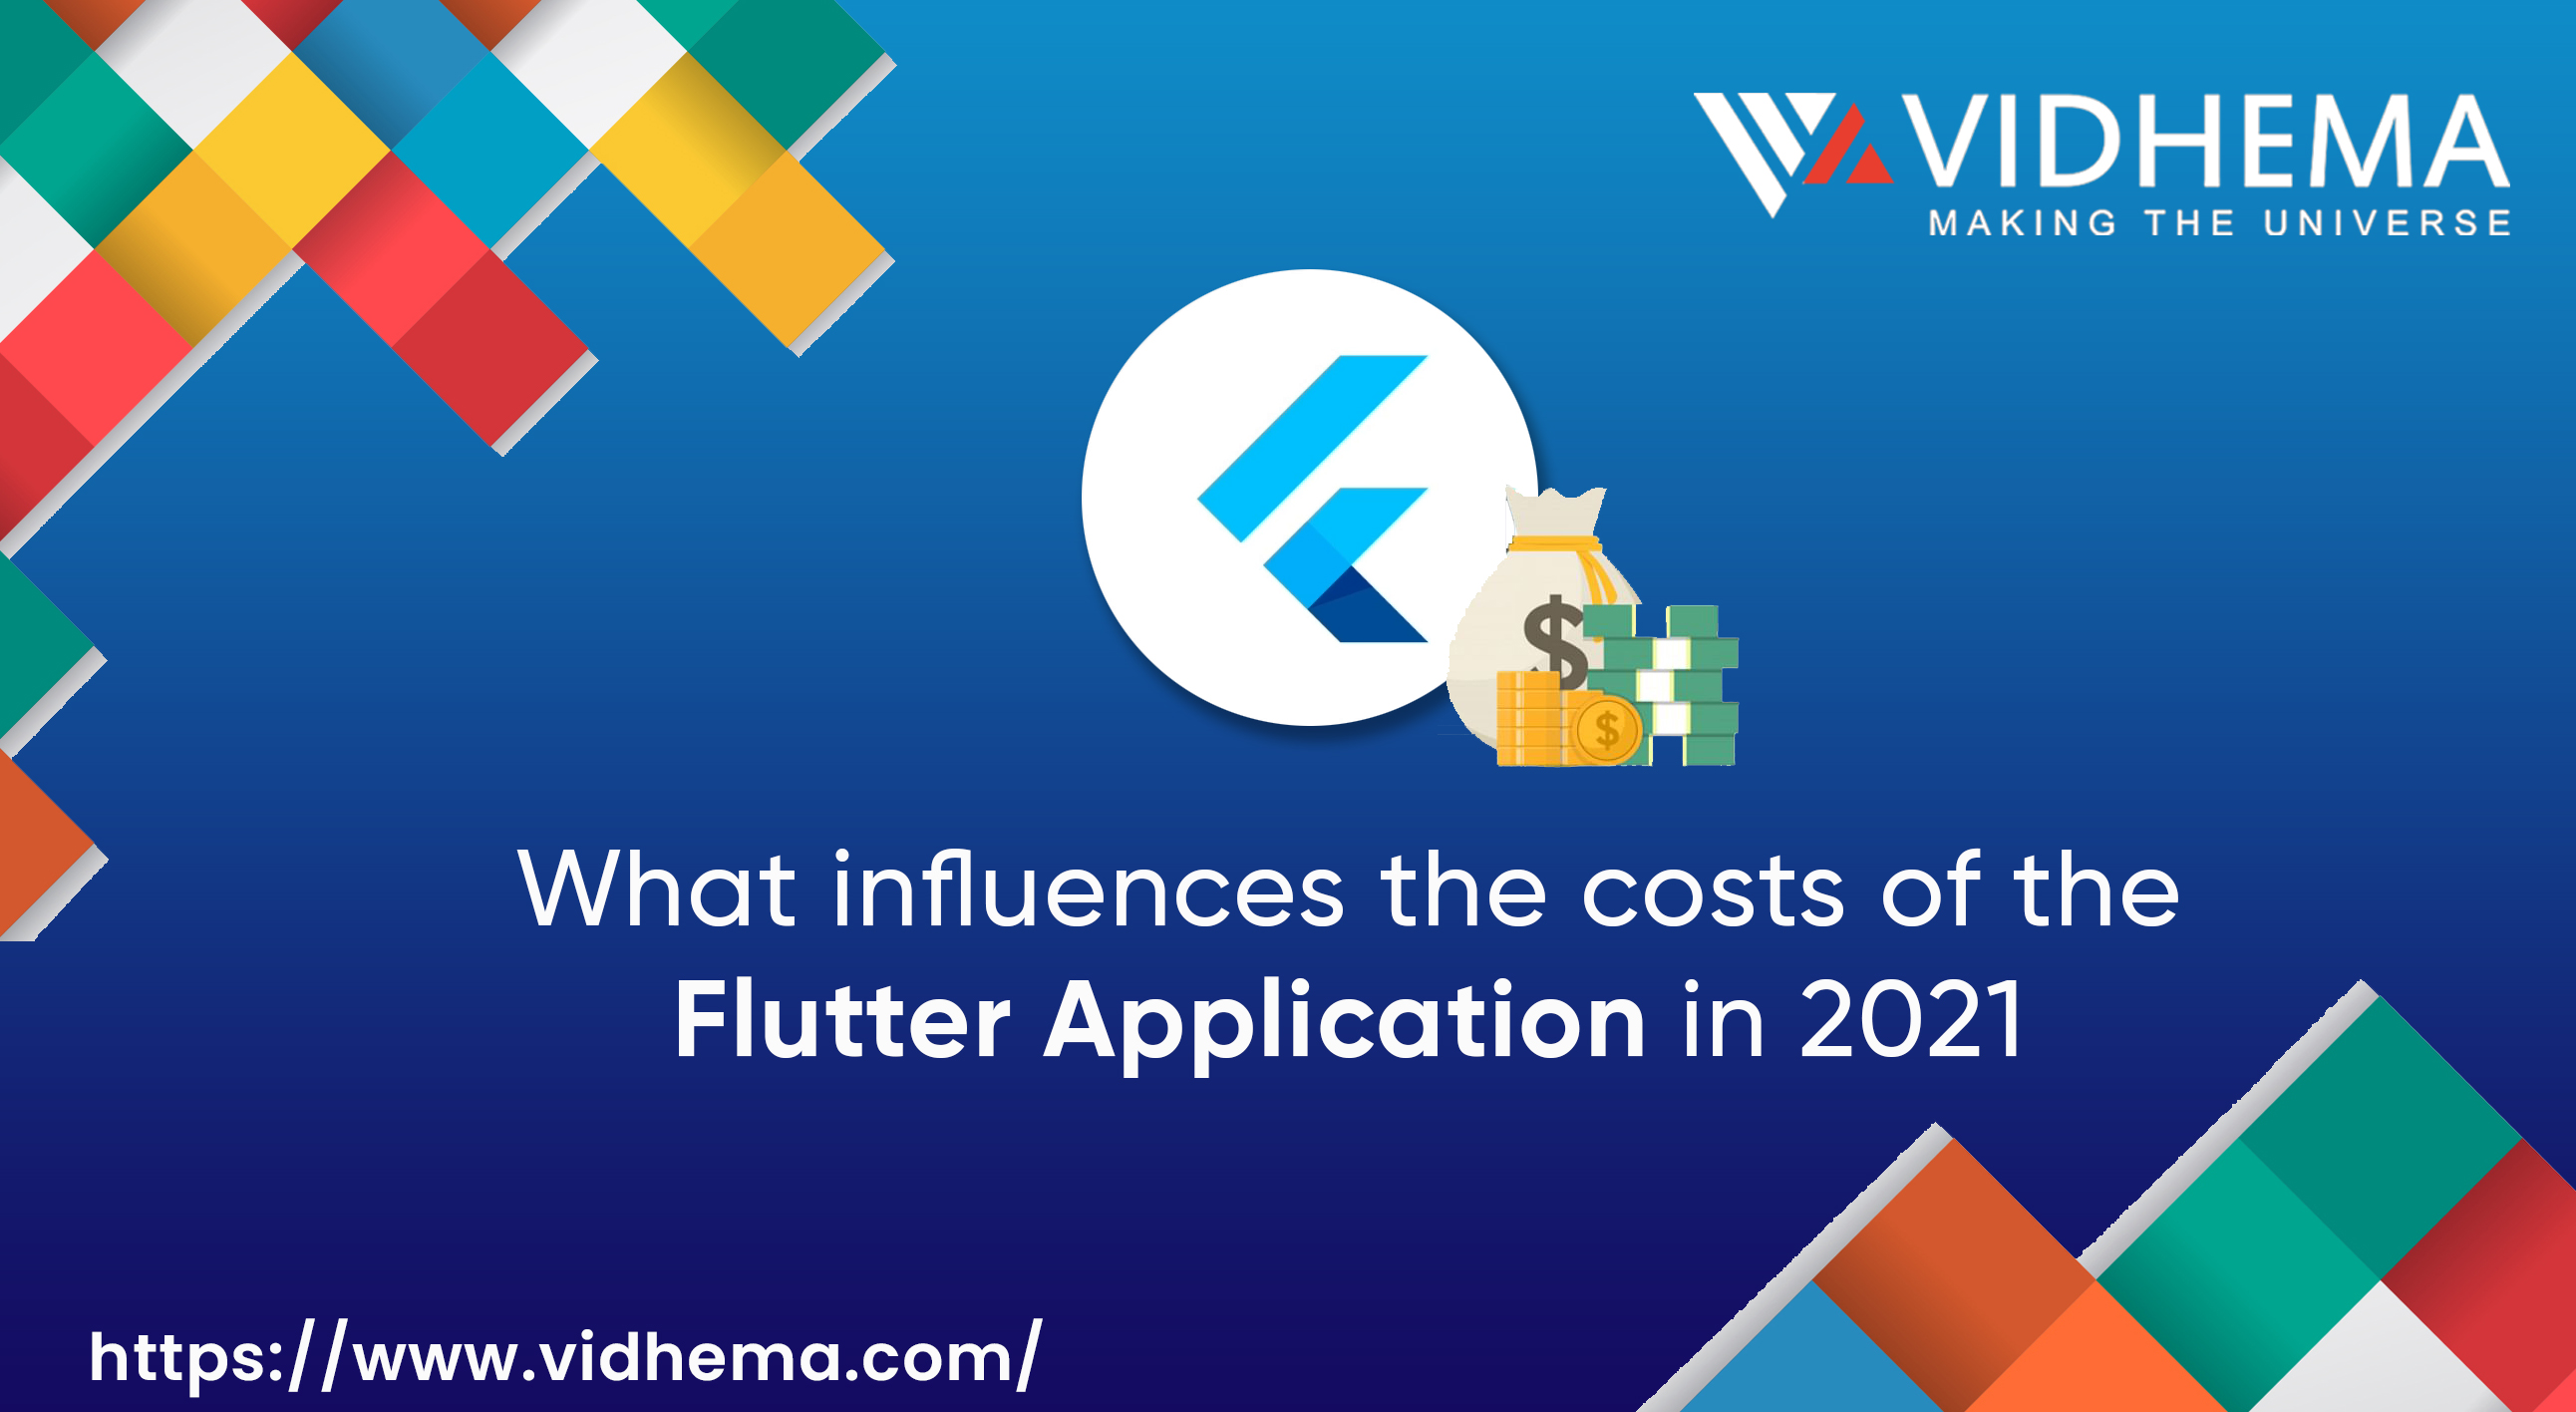 What influences the costs of the Flutter Application in 2021?